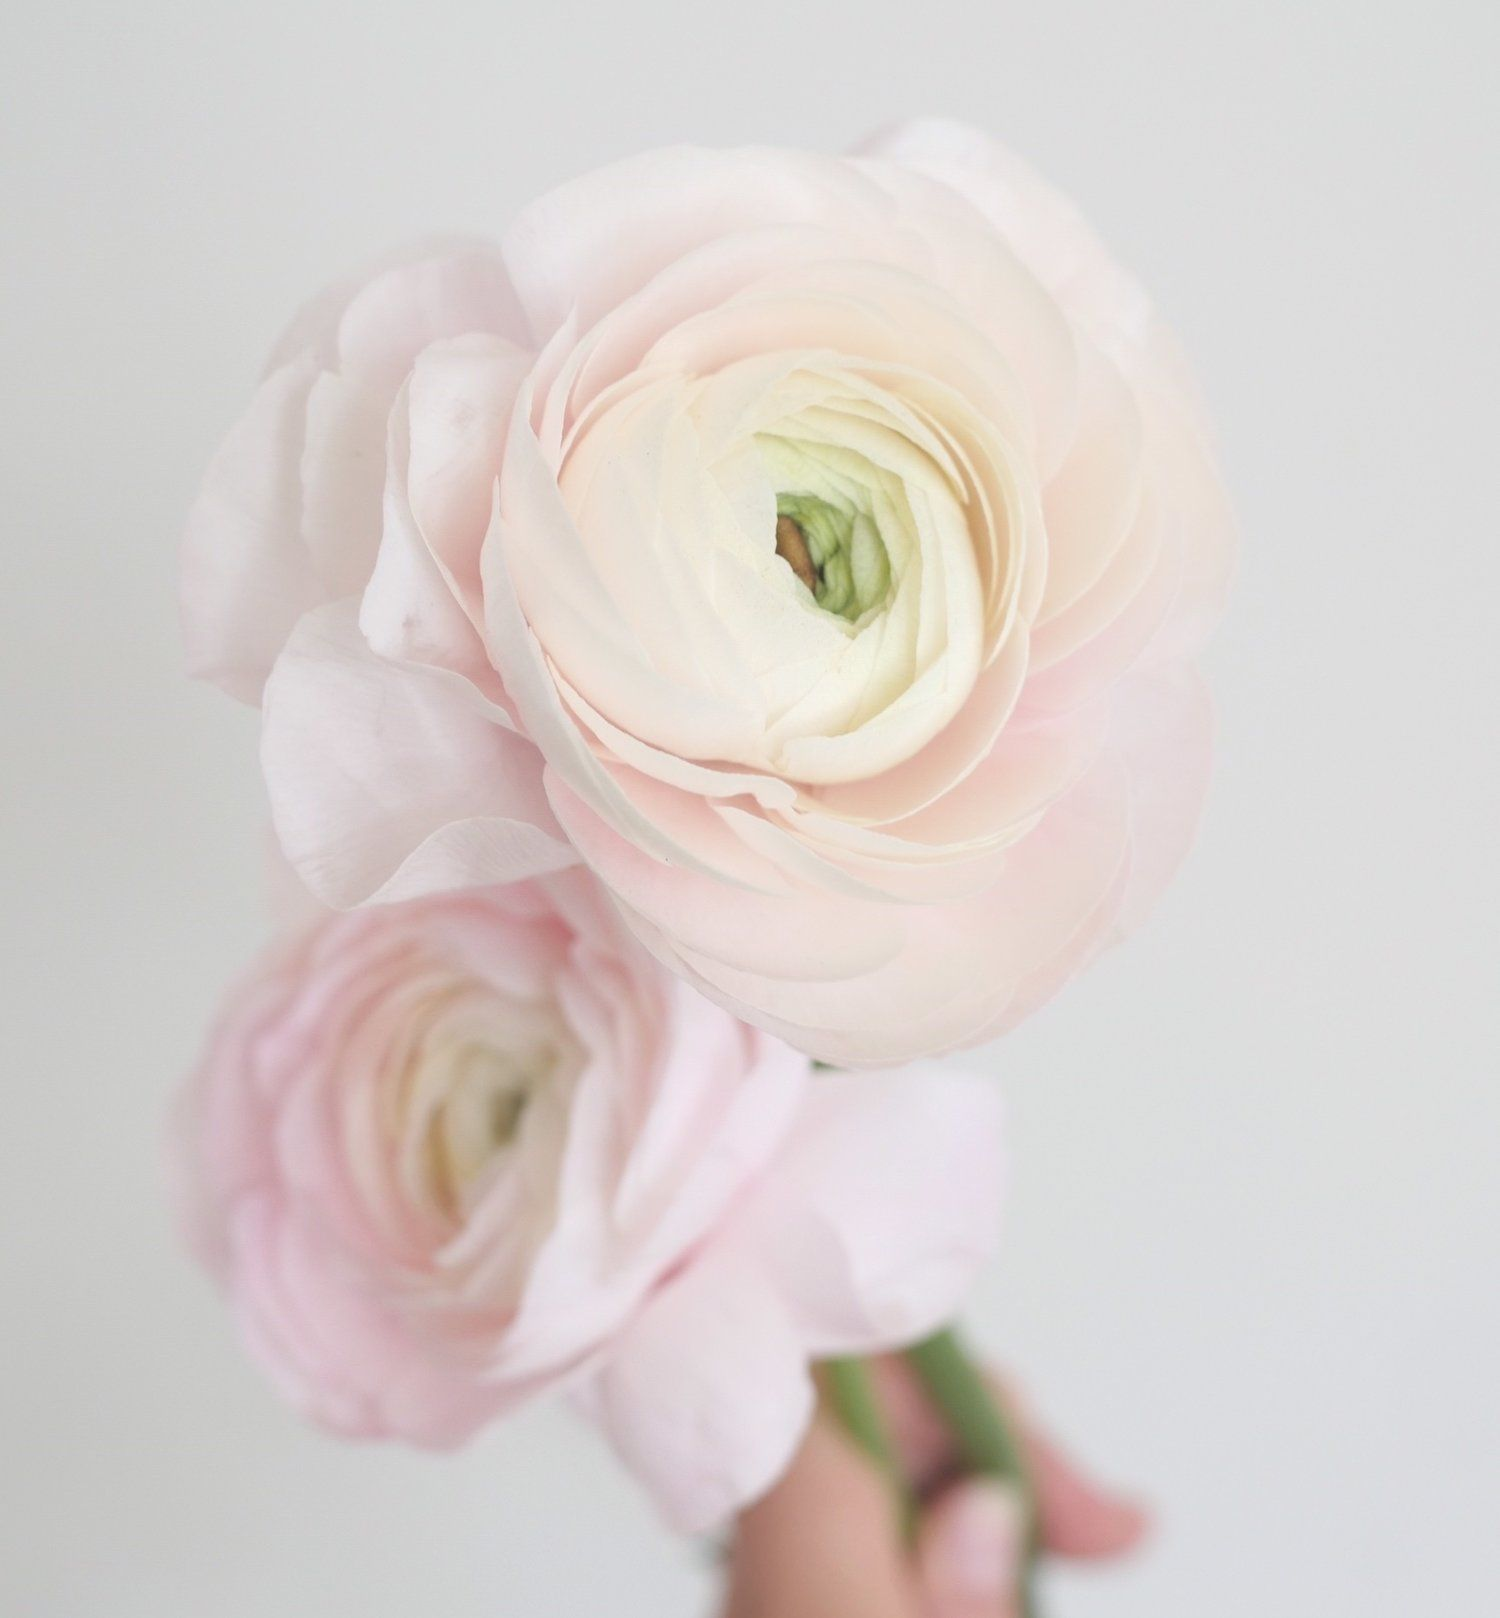 Blush Ranunculus For Wedding Floral Design Color Theory Collective Blush Pink Light Pink Bloom Flower Guide Unique Wedding Flowers Cheap Wedding Flowers